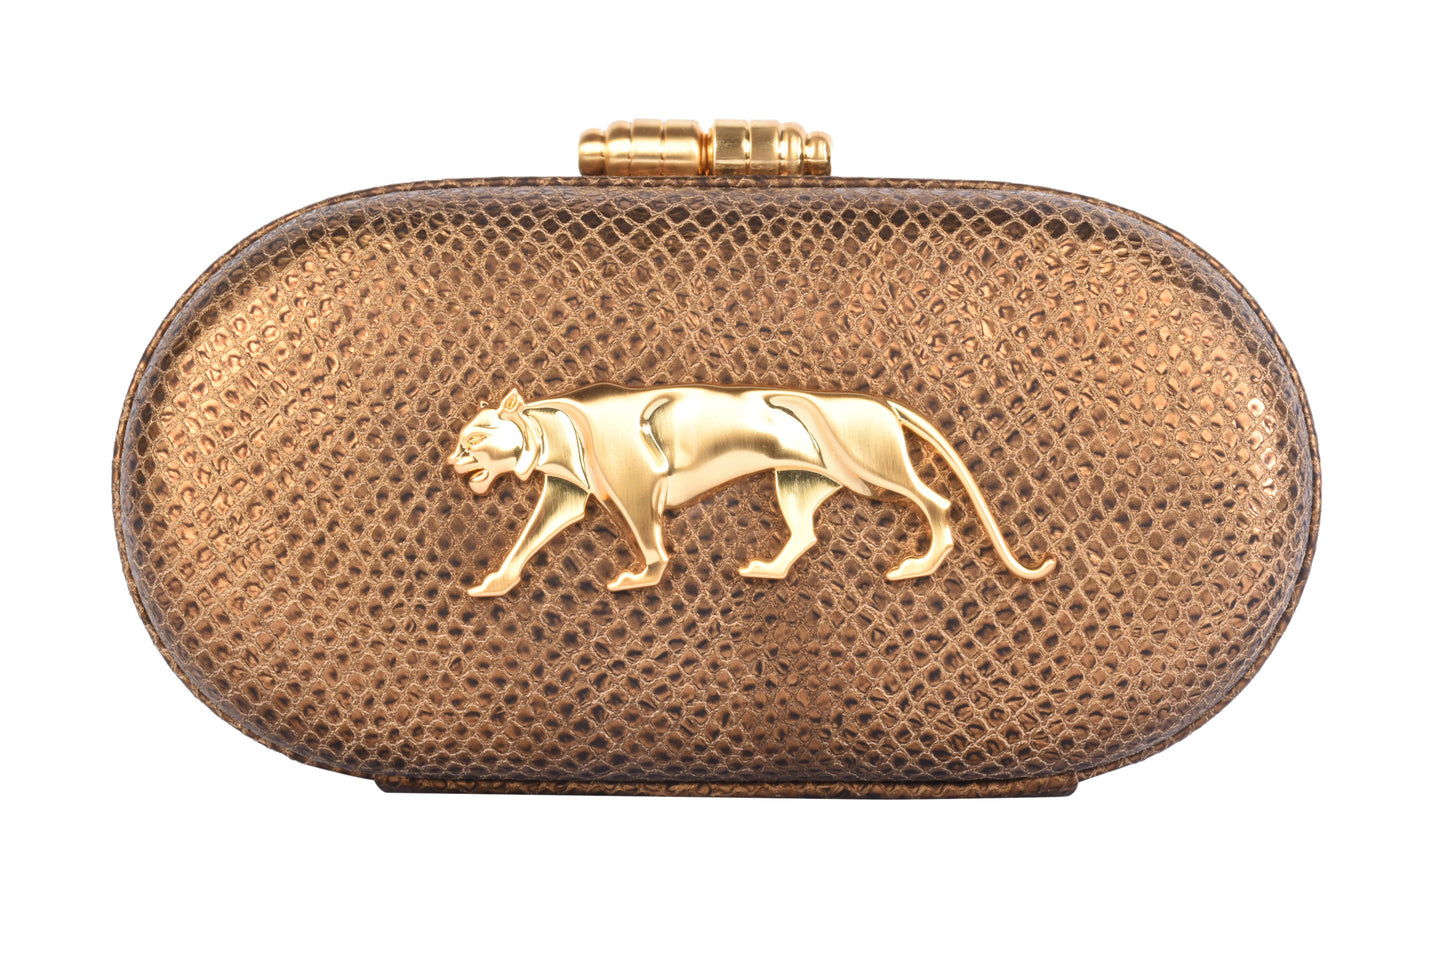 The Royal Bengal Tiger Minaudiere Clutch (Sahara Gold) - The Grand Trunk